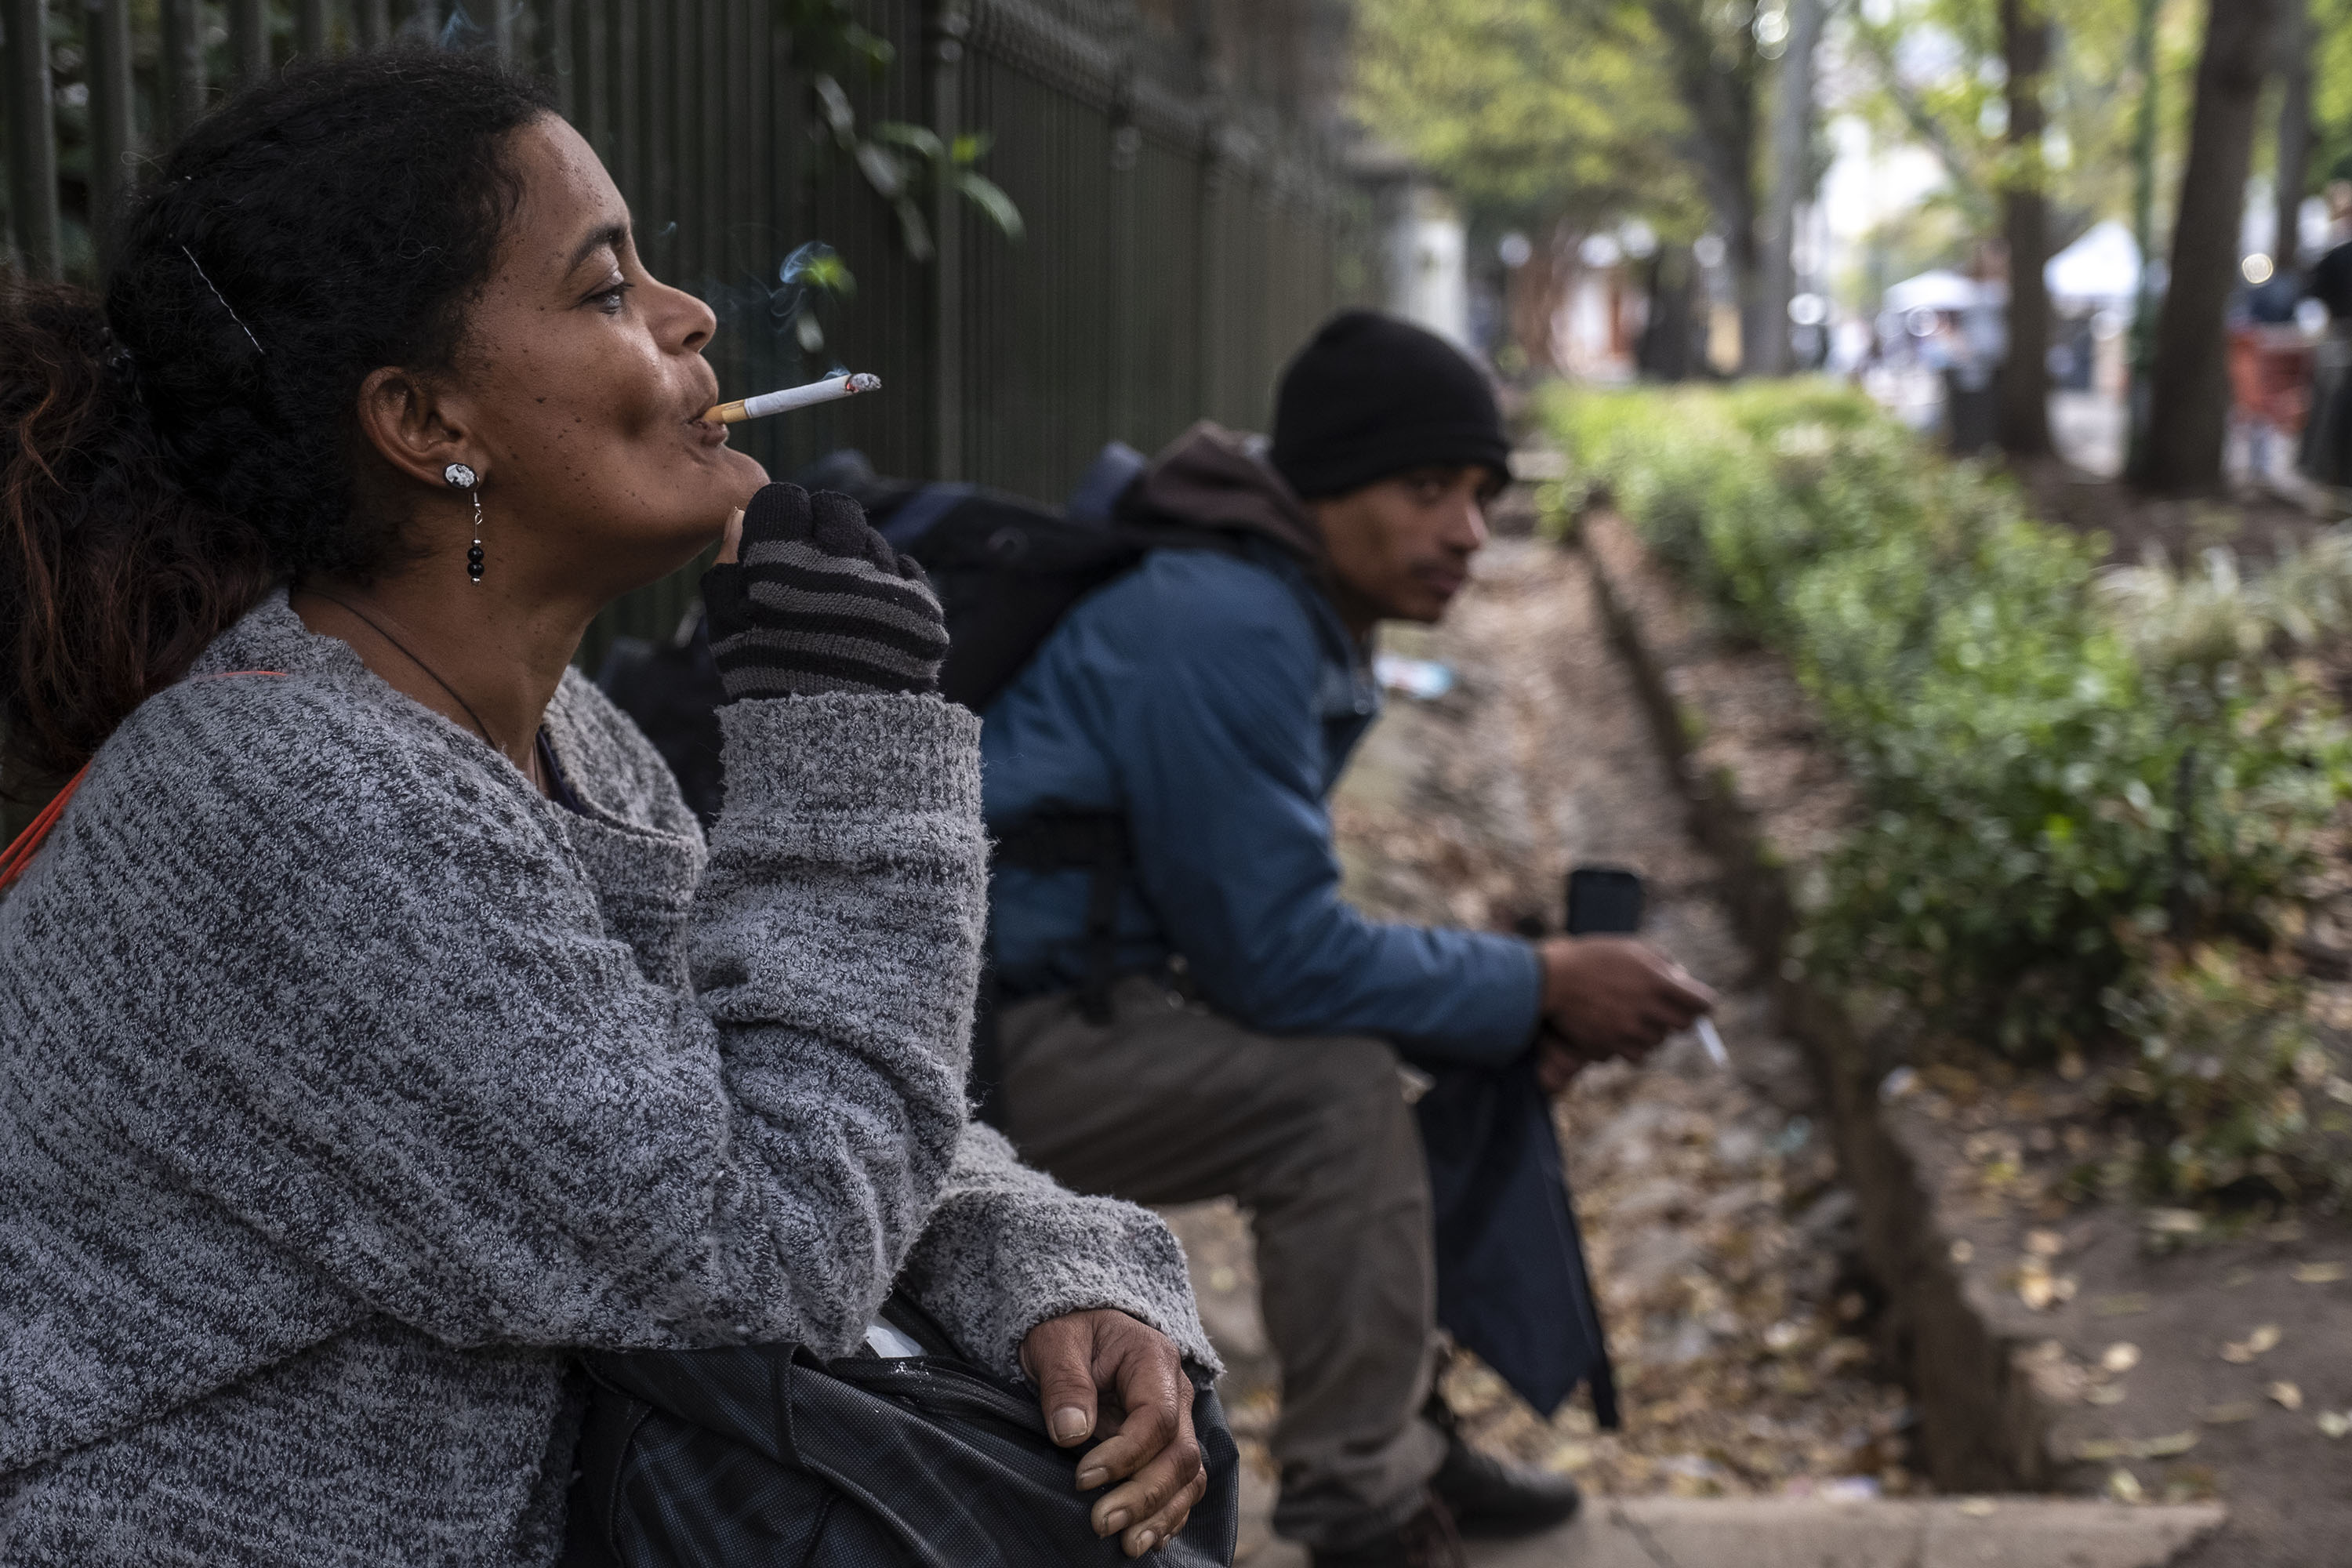 28 August 2019: Carin Gelderbloem (left) and Rameez Kemp say it feels to them as though the authorities want them to be out in the cold during the winter months.